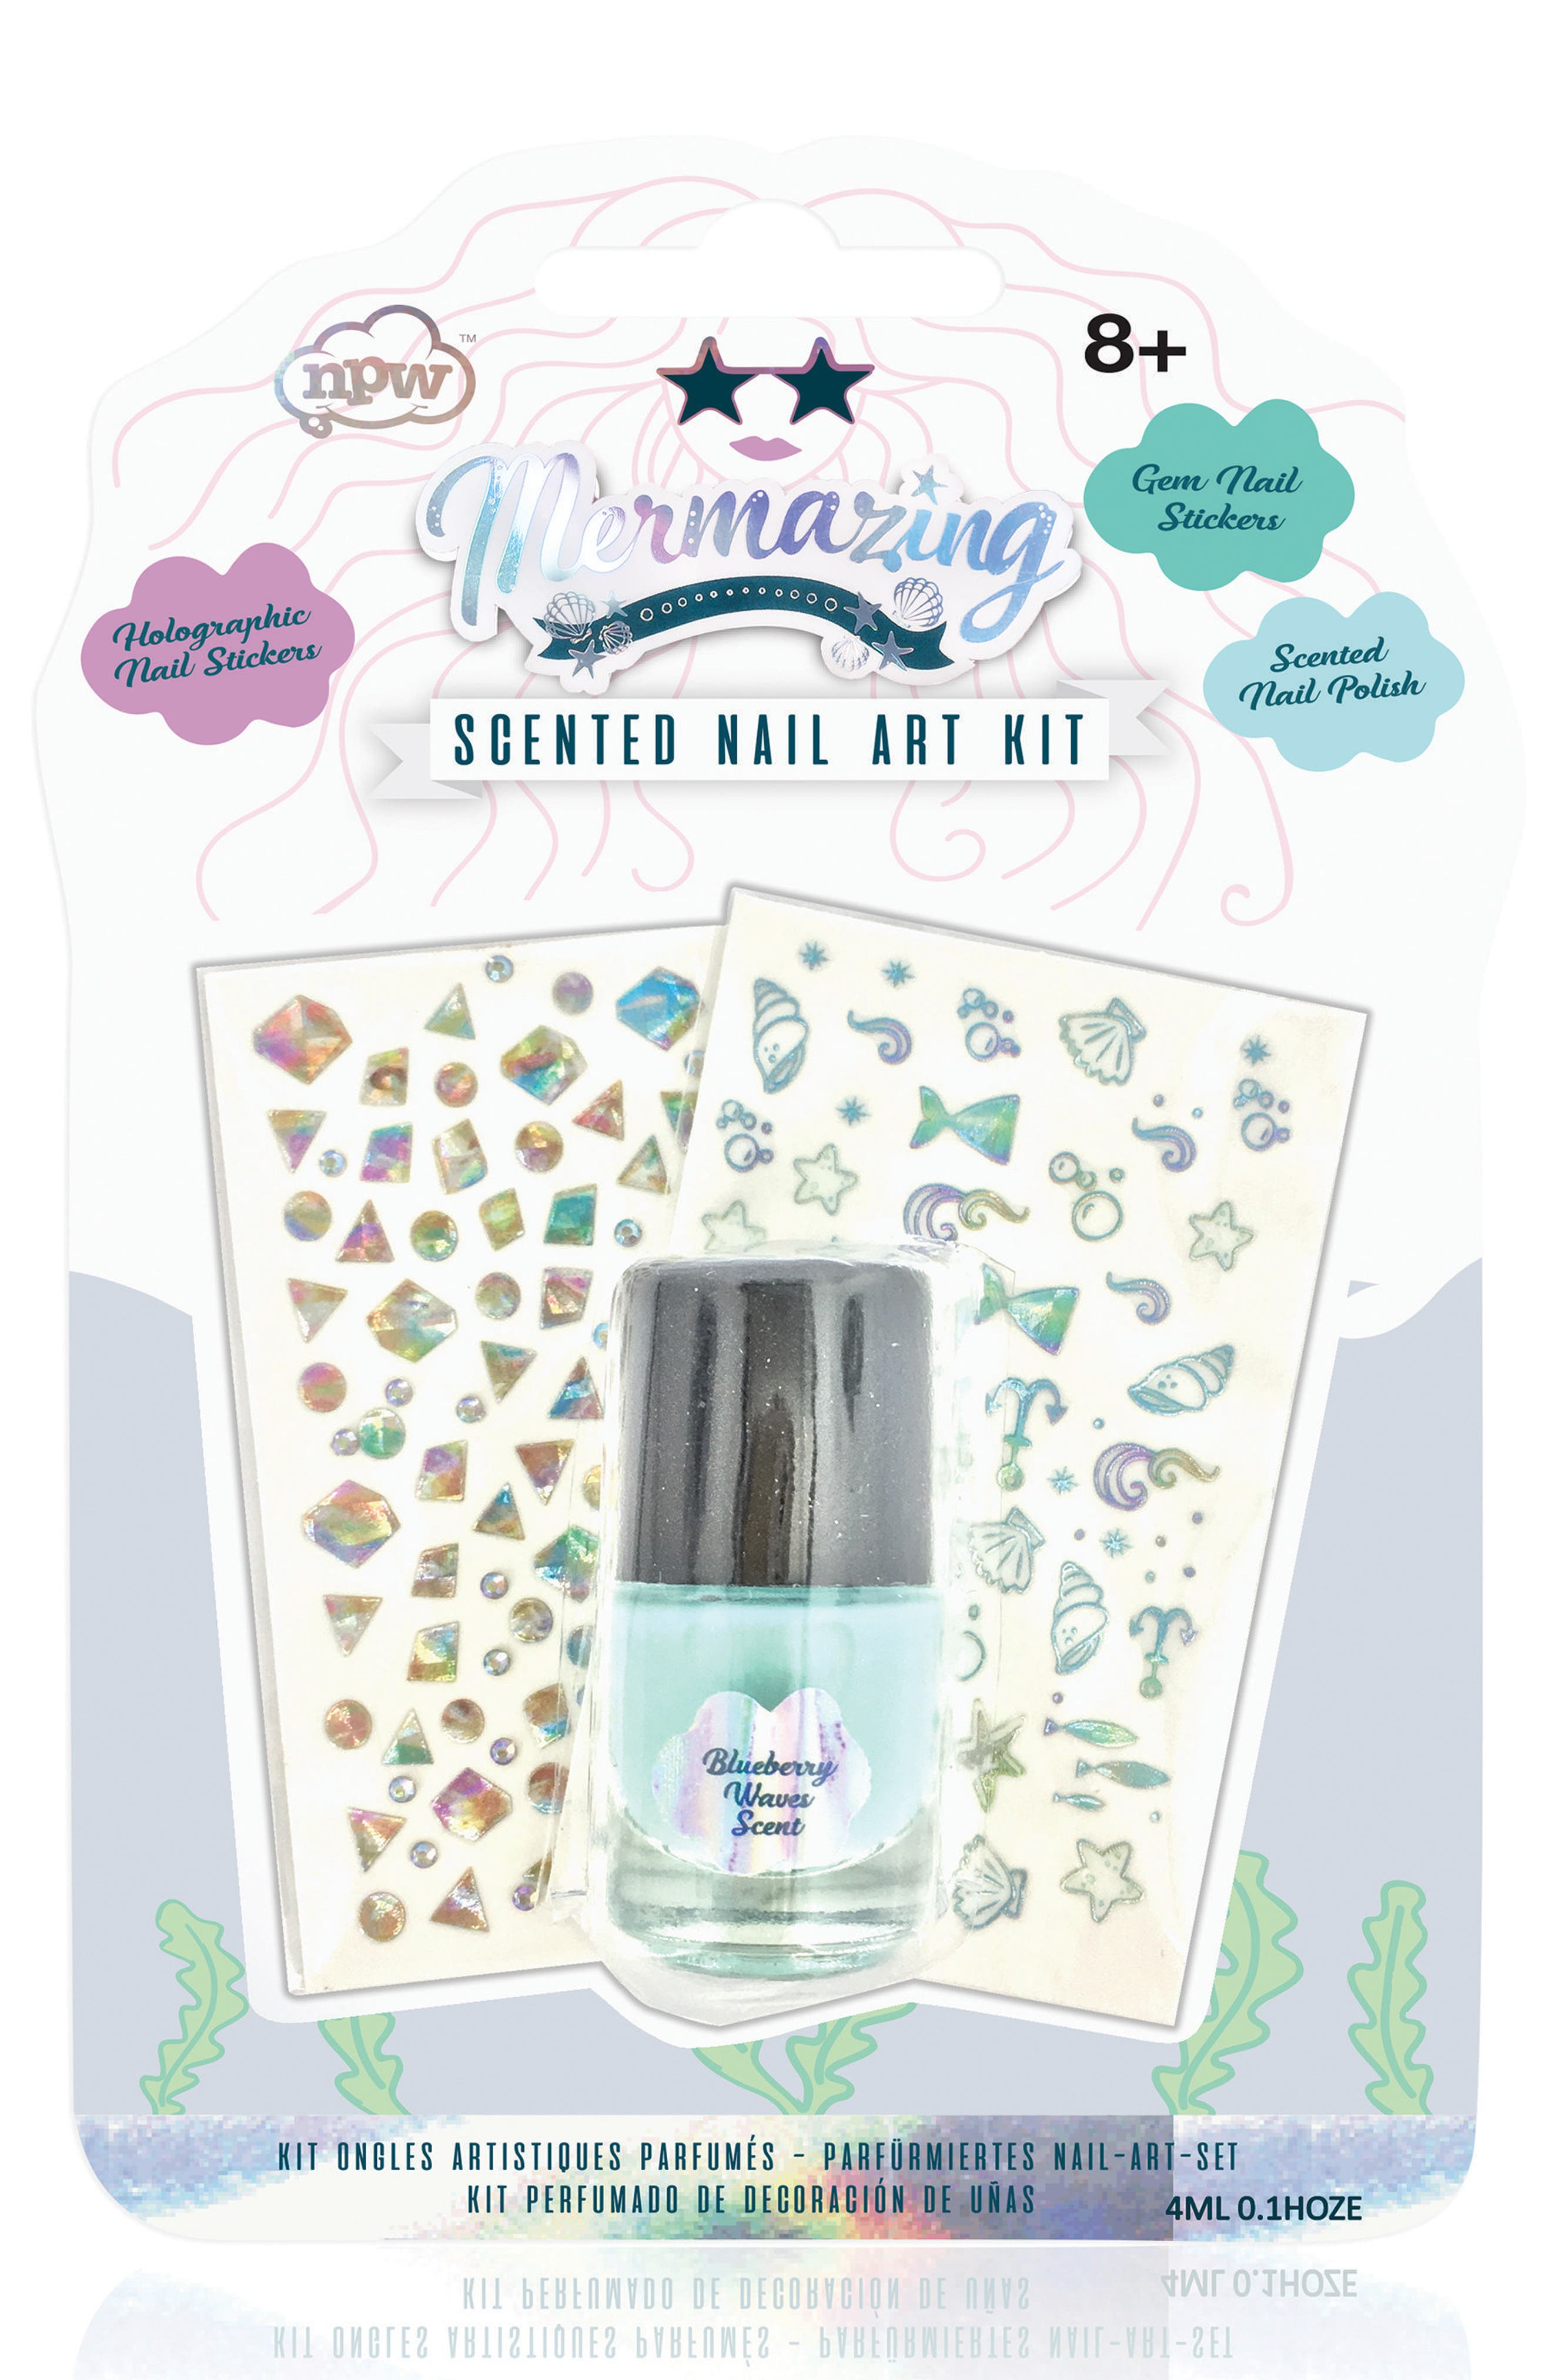 NPW Mermazing Scented Nail Art Kit